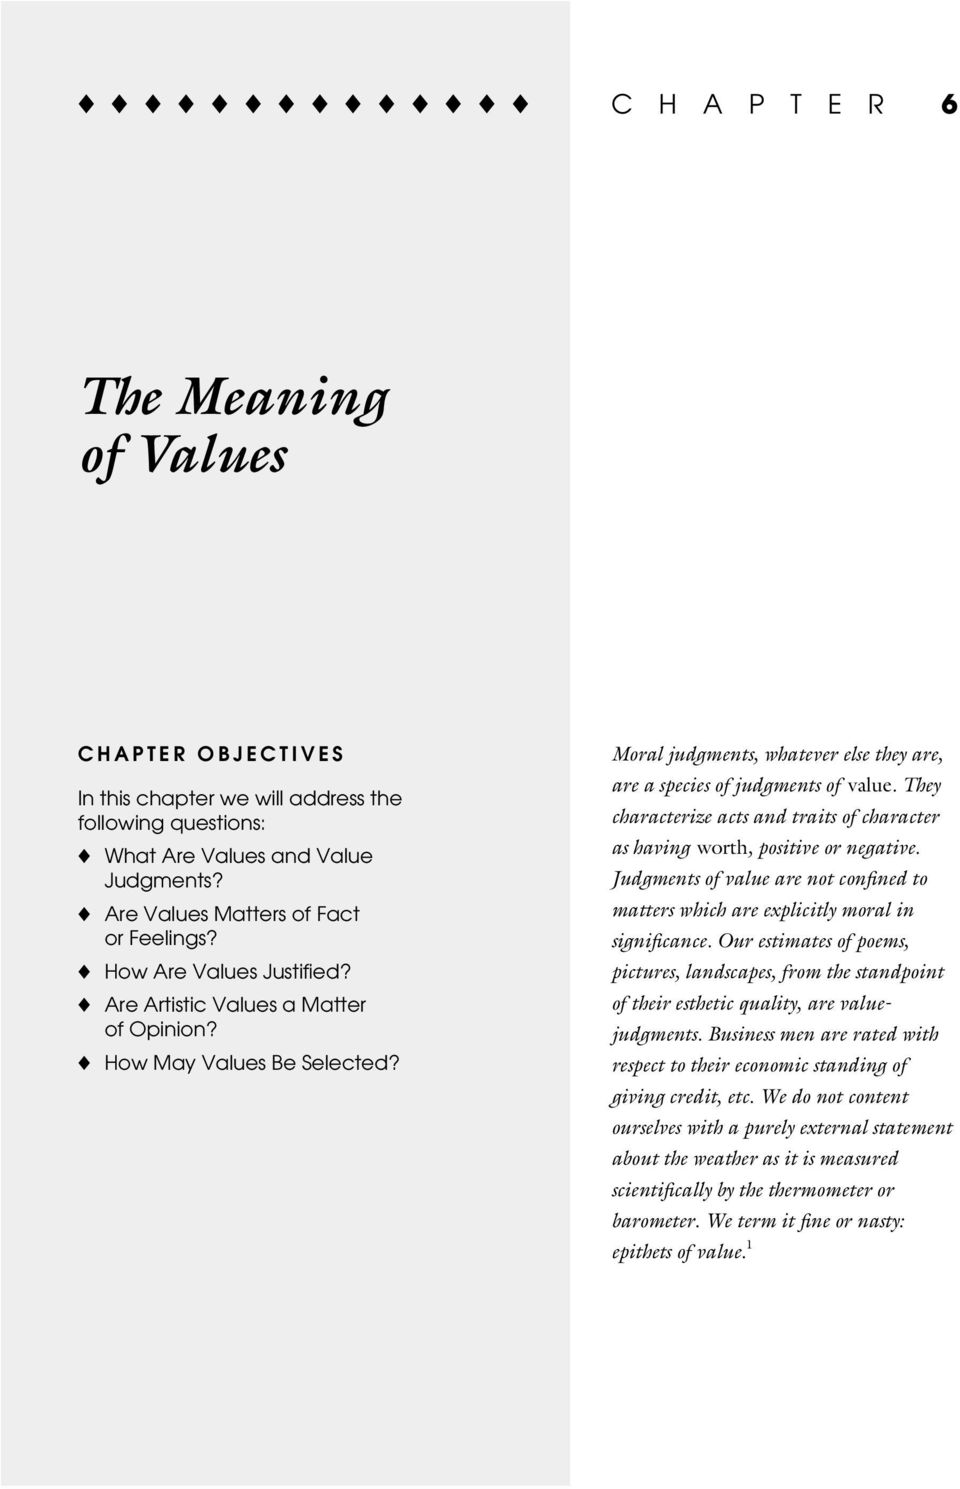 They characterize acts and traits of character as having worth, positive or negative. Judgments of value are not confined to matters which are explicitly moral in significance.